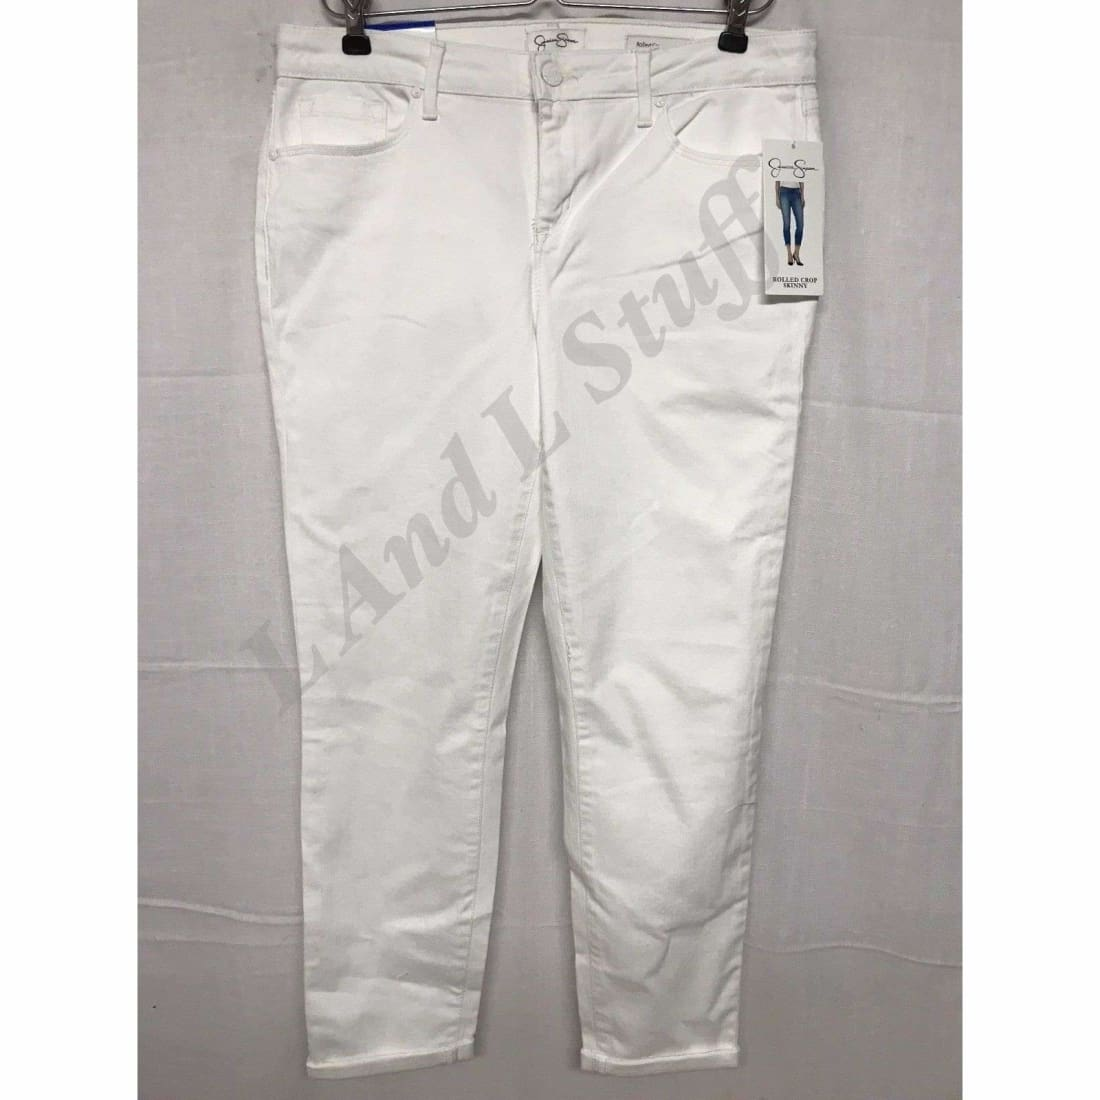 Jessica Simpson Rolled Crop Skinny Super Stretch Jeans Womens 6 / White Jeans